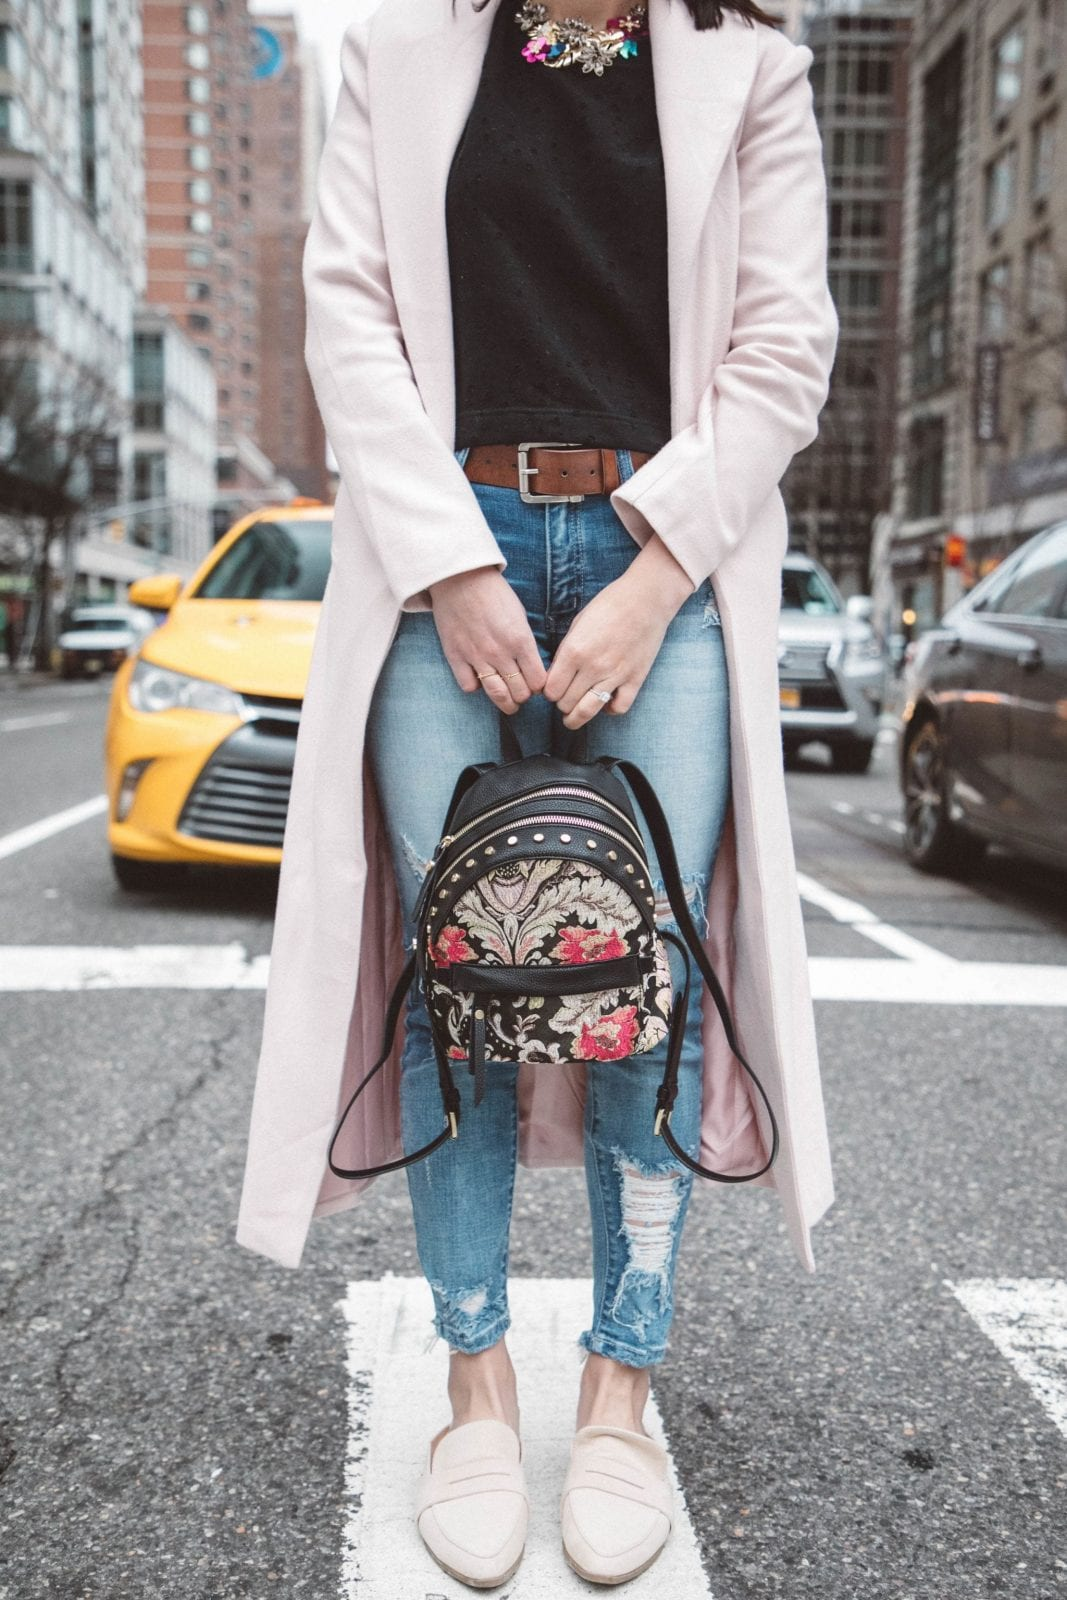 This is a detail shot of me holding my Sam Edelman backpack in the middle of the street in New York City.